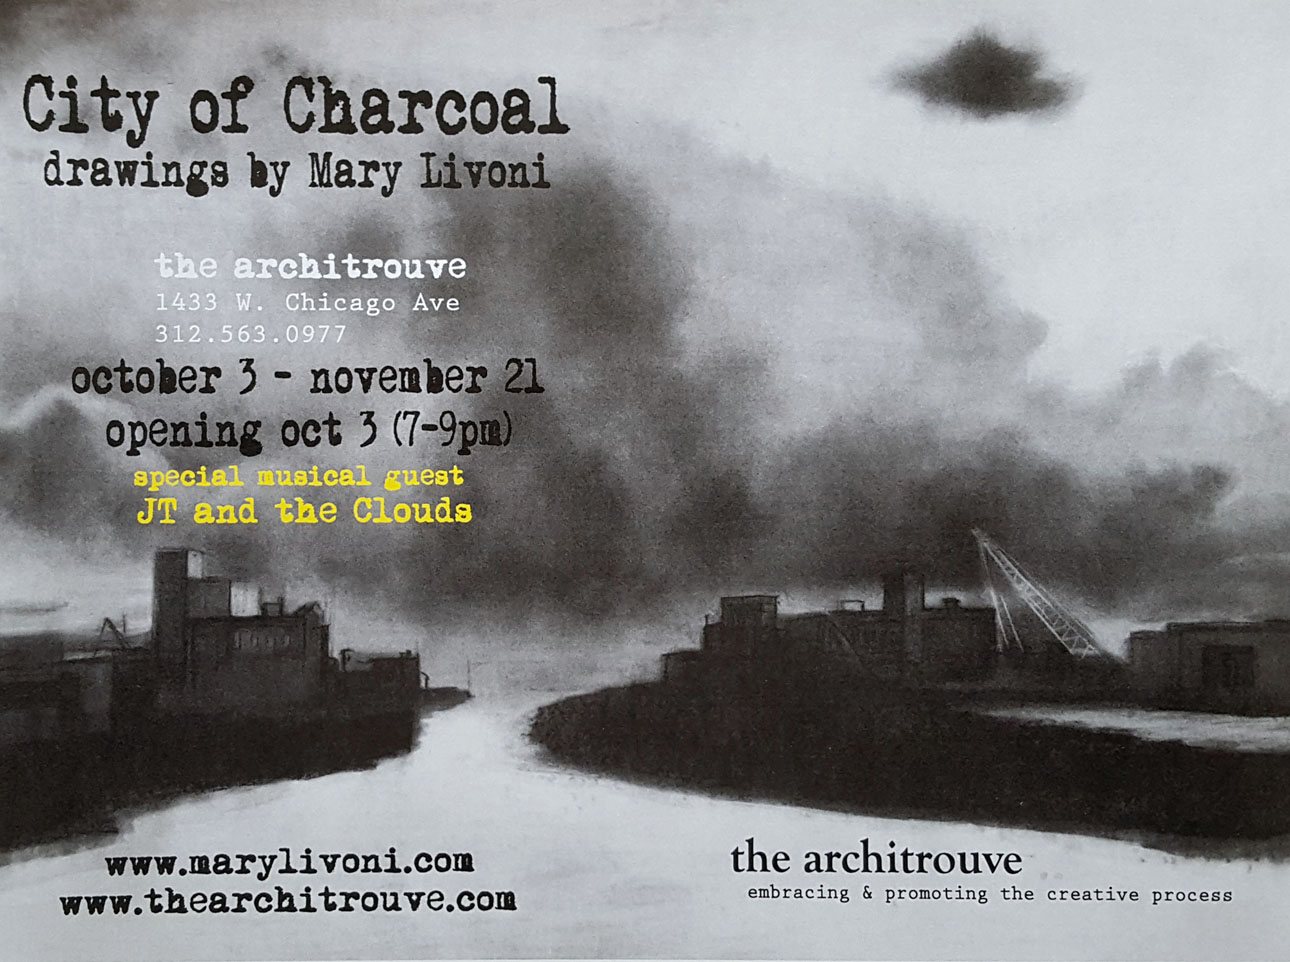 City of Charcoal